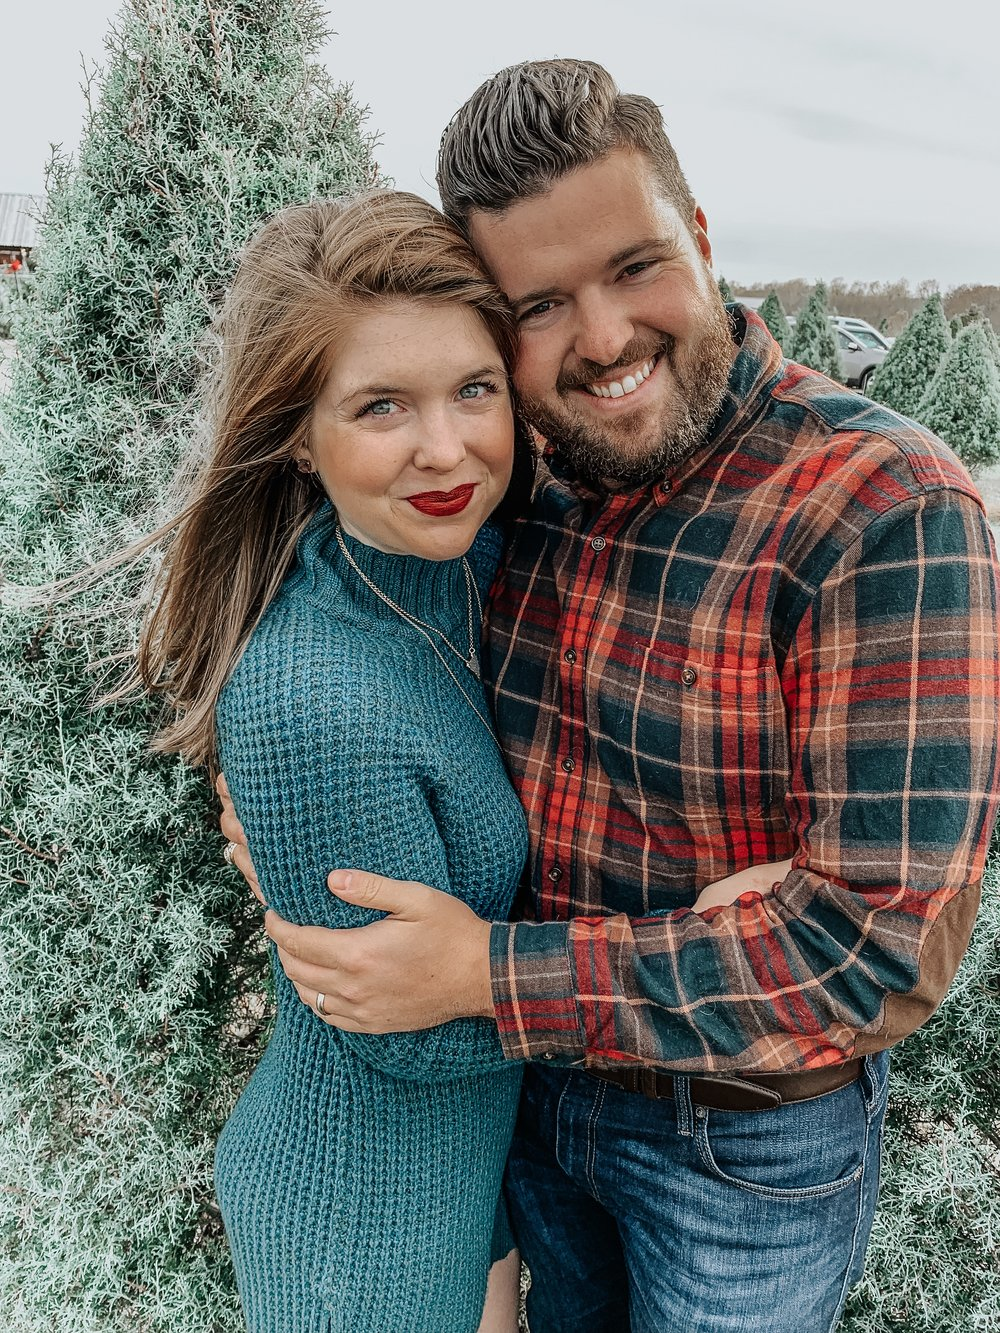 where to cut down our own christmas tree near dallas, chop down your christmas tree in dfw, kajin christmas tree farm, u-pick farm, rockwall, american eagle sweater dress, suede over the knee boots, matte red lipstick, lawless lipstick